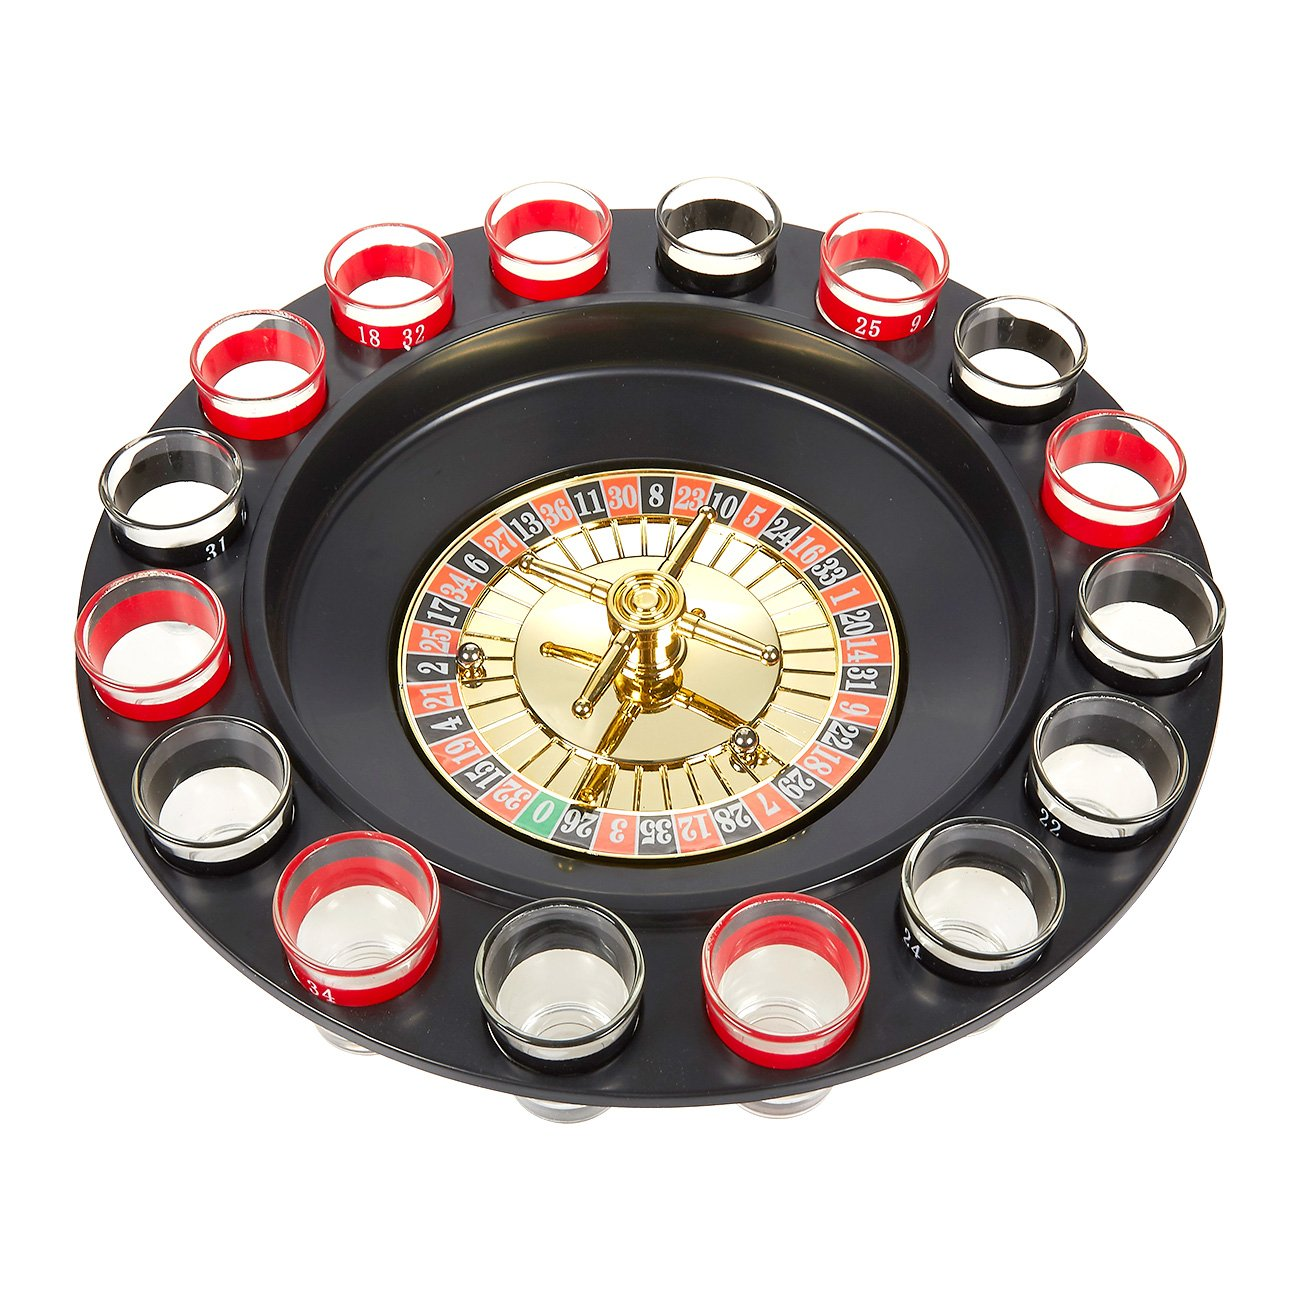 Juvale Roulette Drinking Game - Shot Glass Roulette Set Includes Roulette Wheel, 16 Shot Glasses, 2 Roulette Balls, and Starting Guide